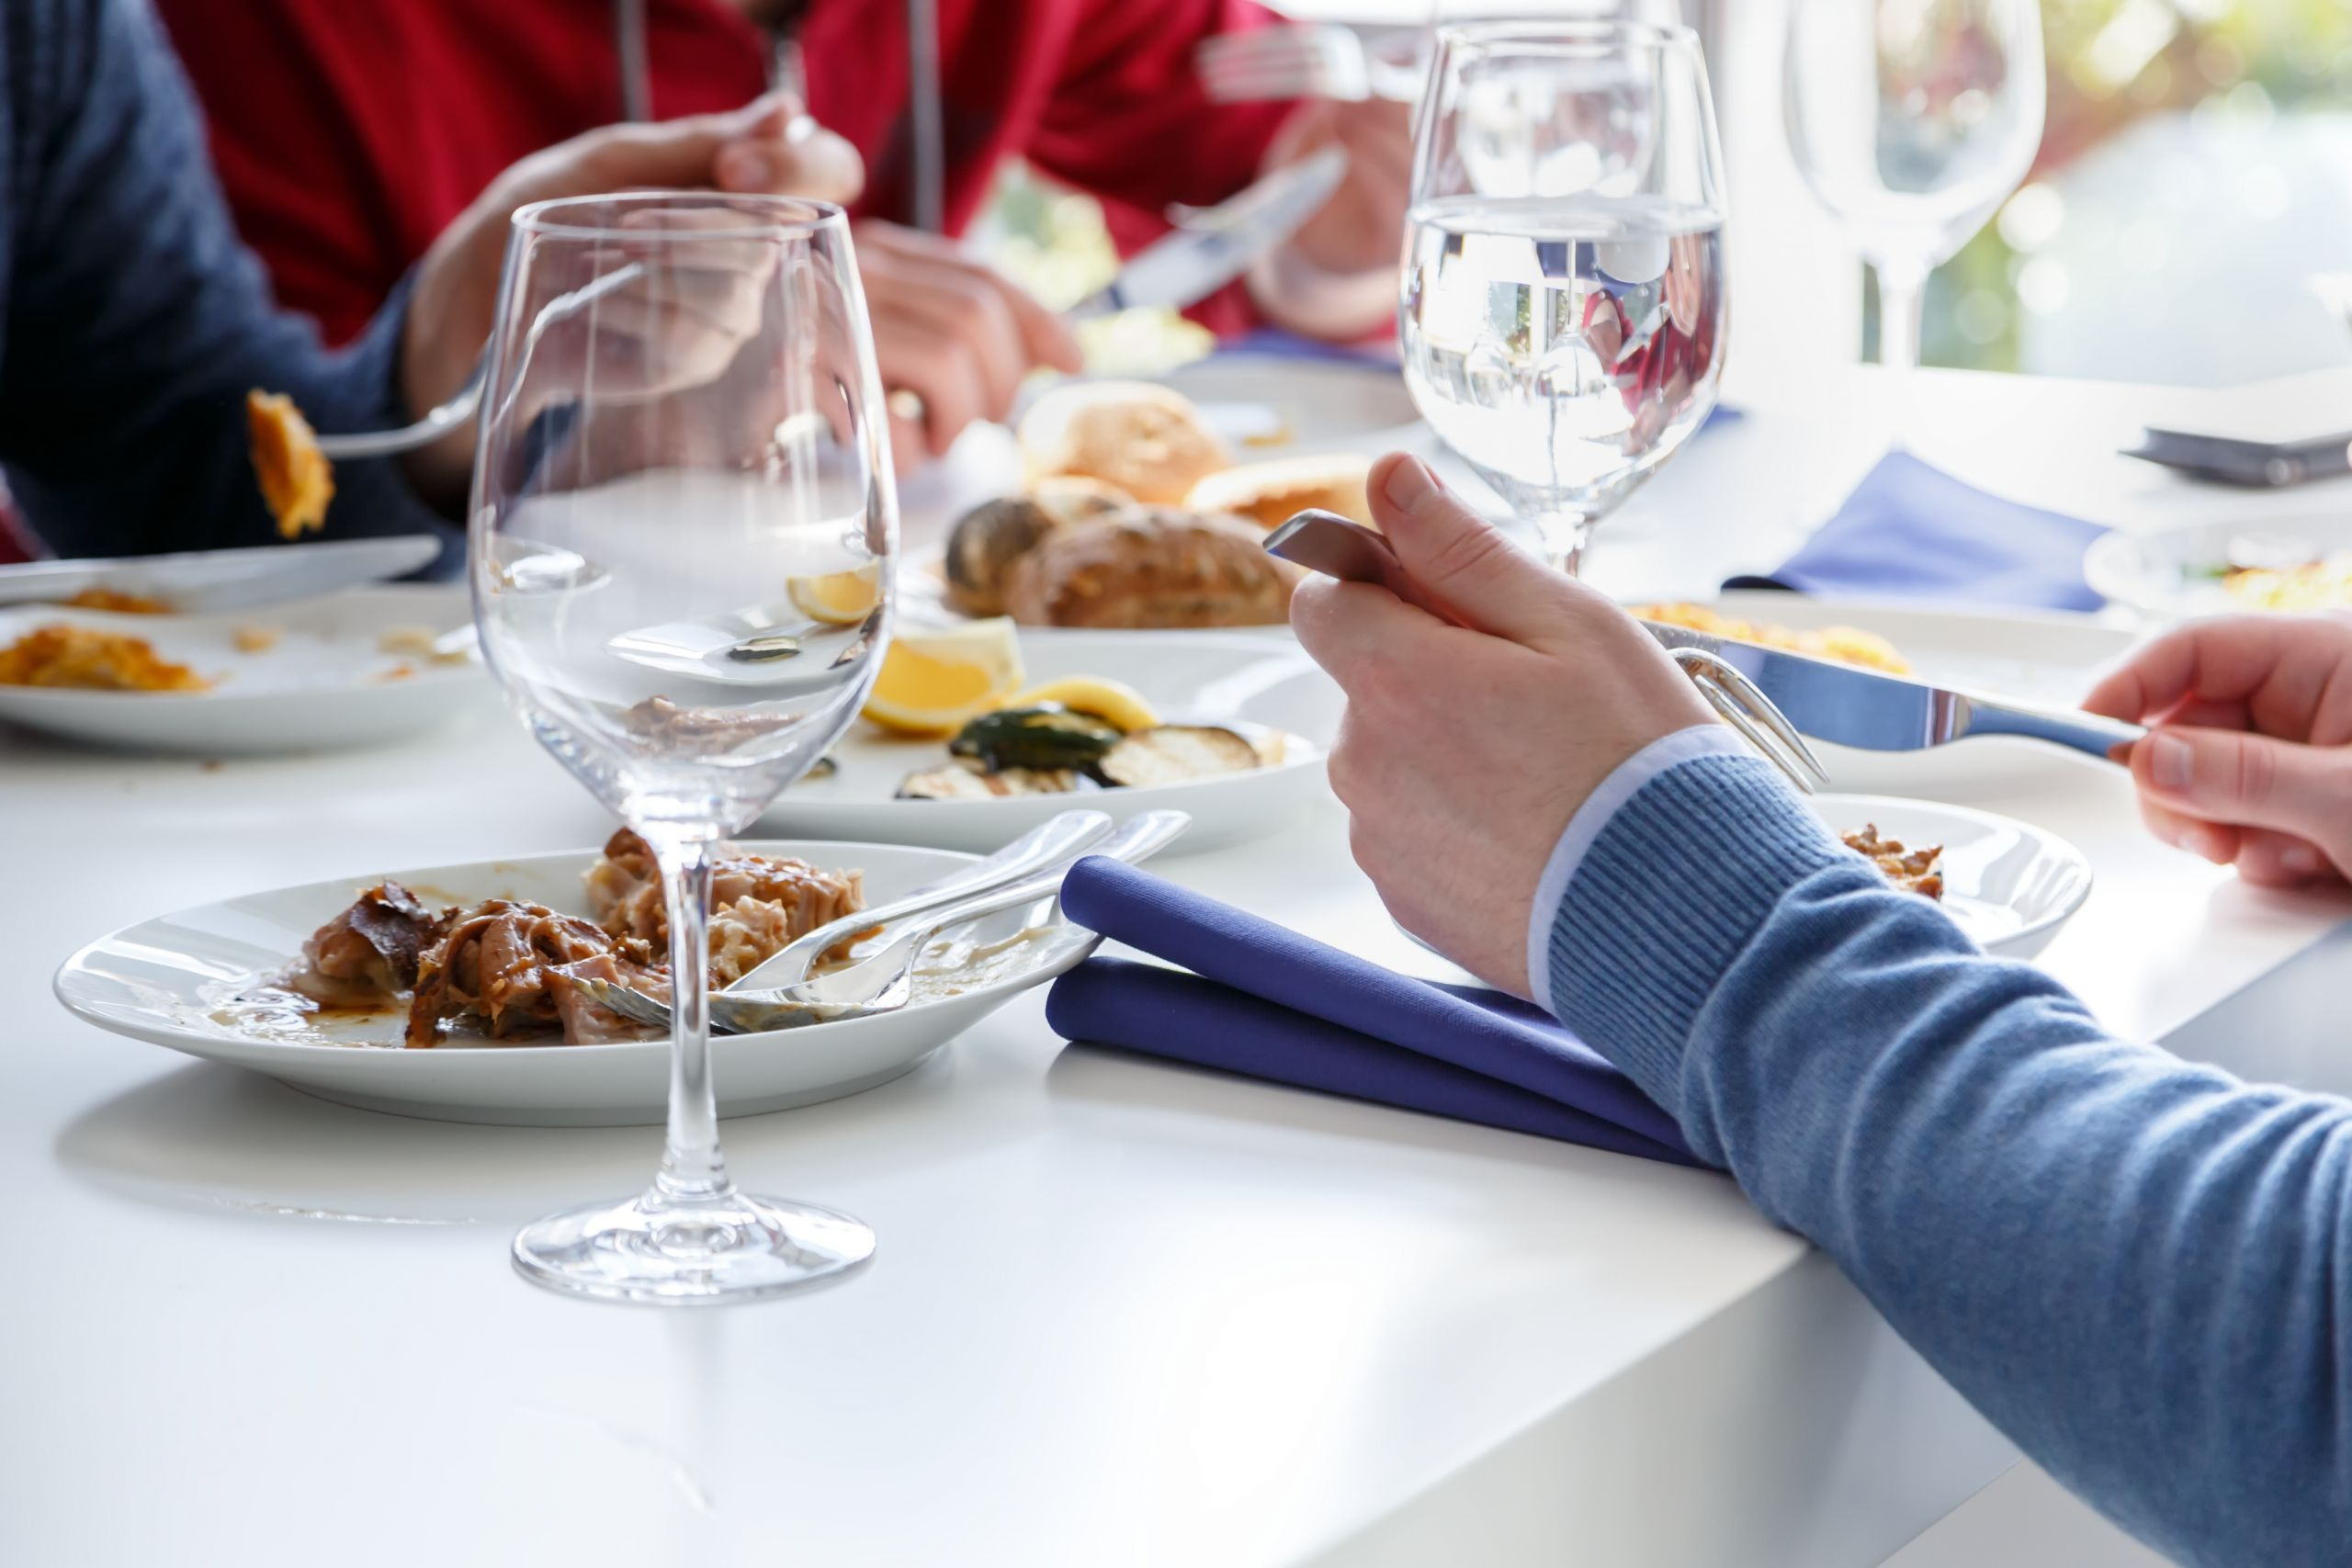 LL: Dinner with Faculty: Spring 2020